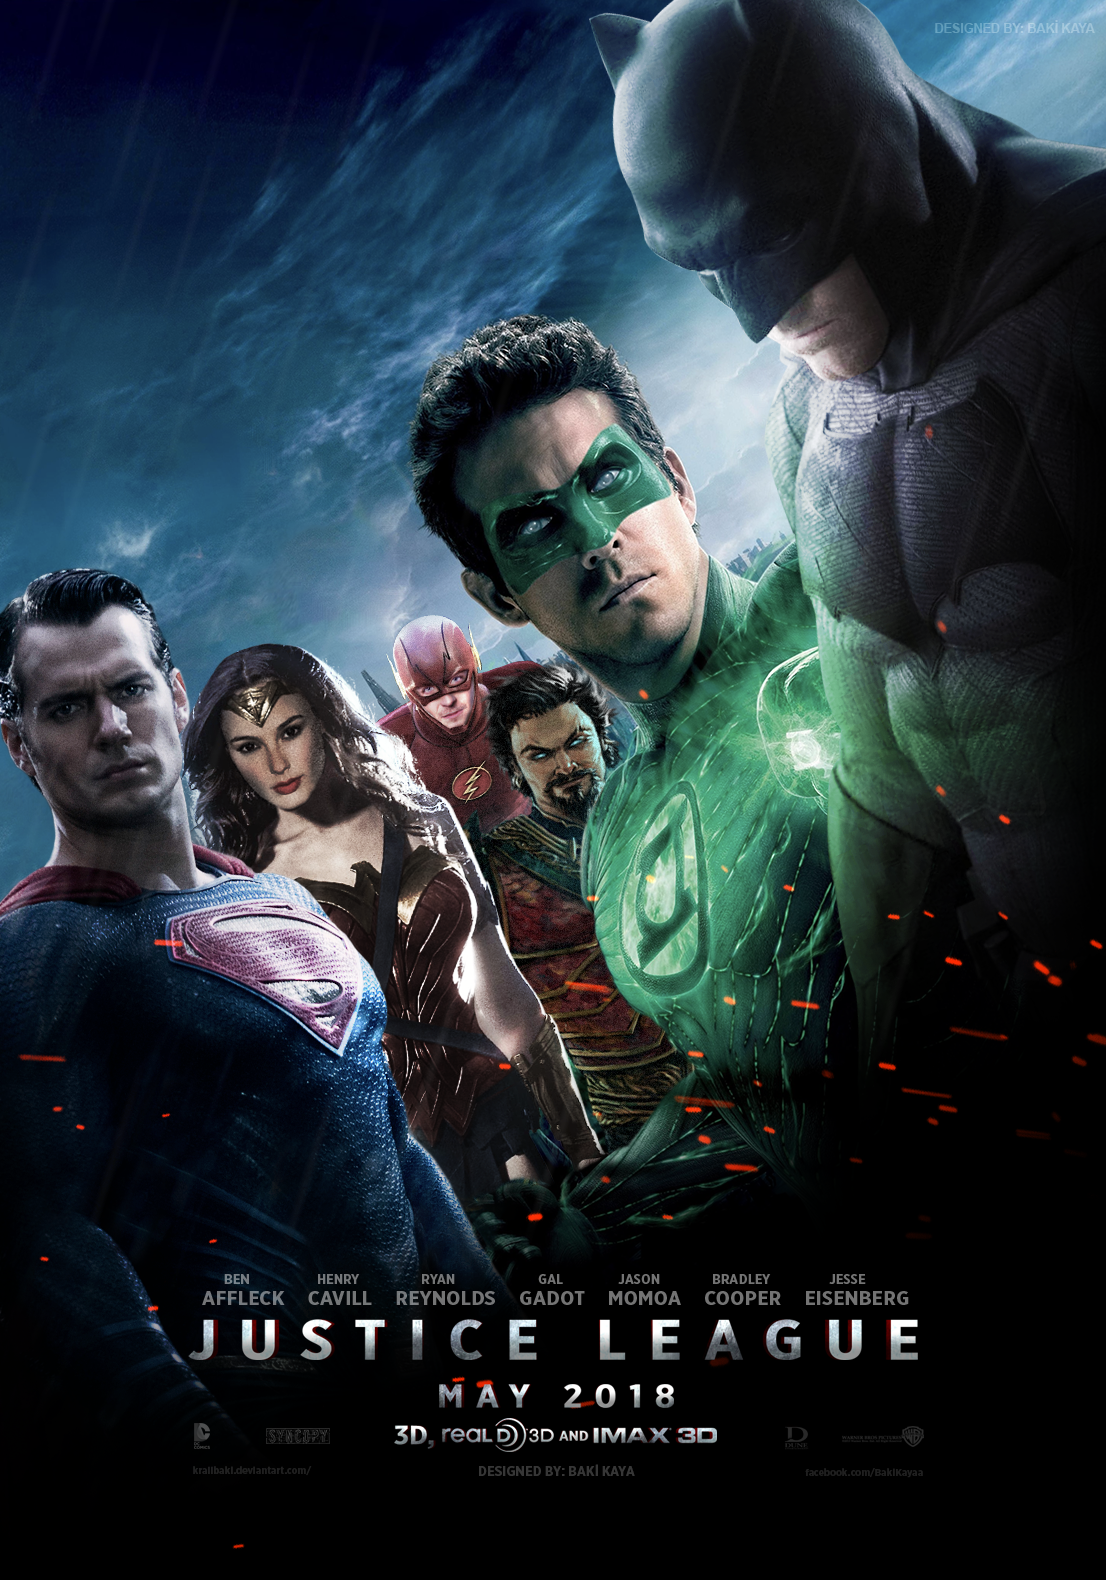 Justice League (2018) Poster by krallbaki on DeviantArt